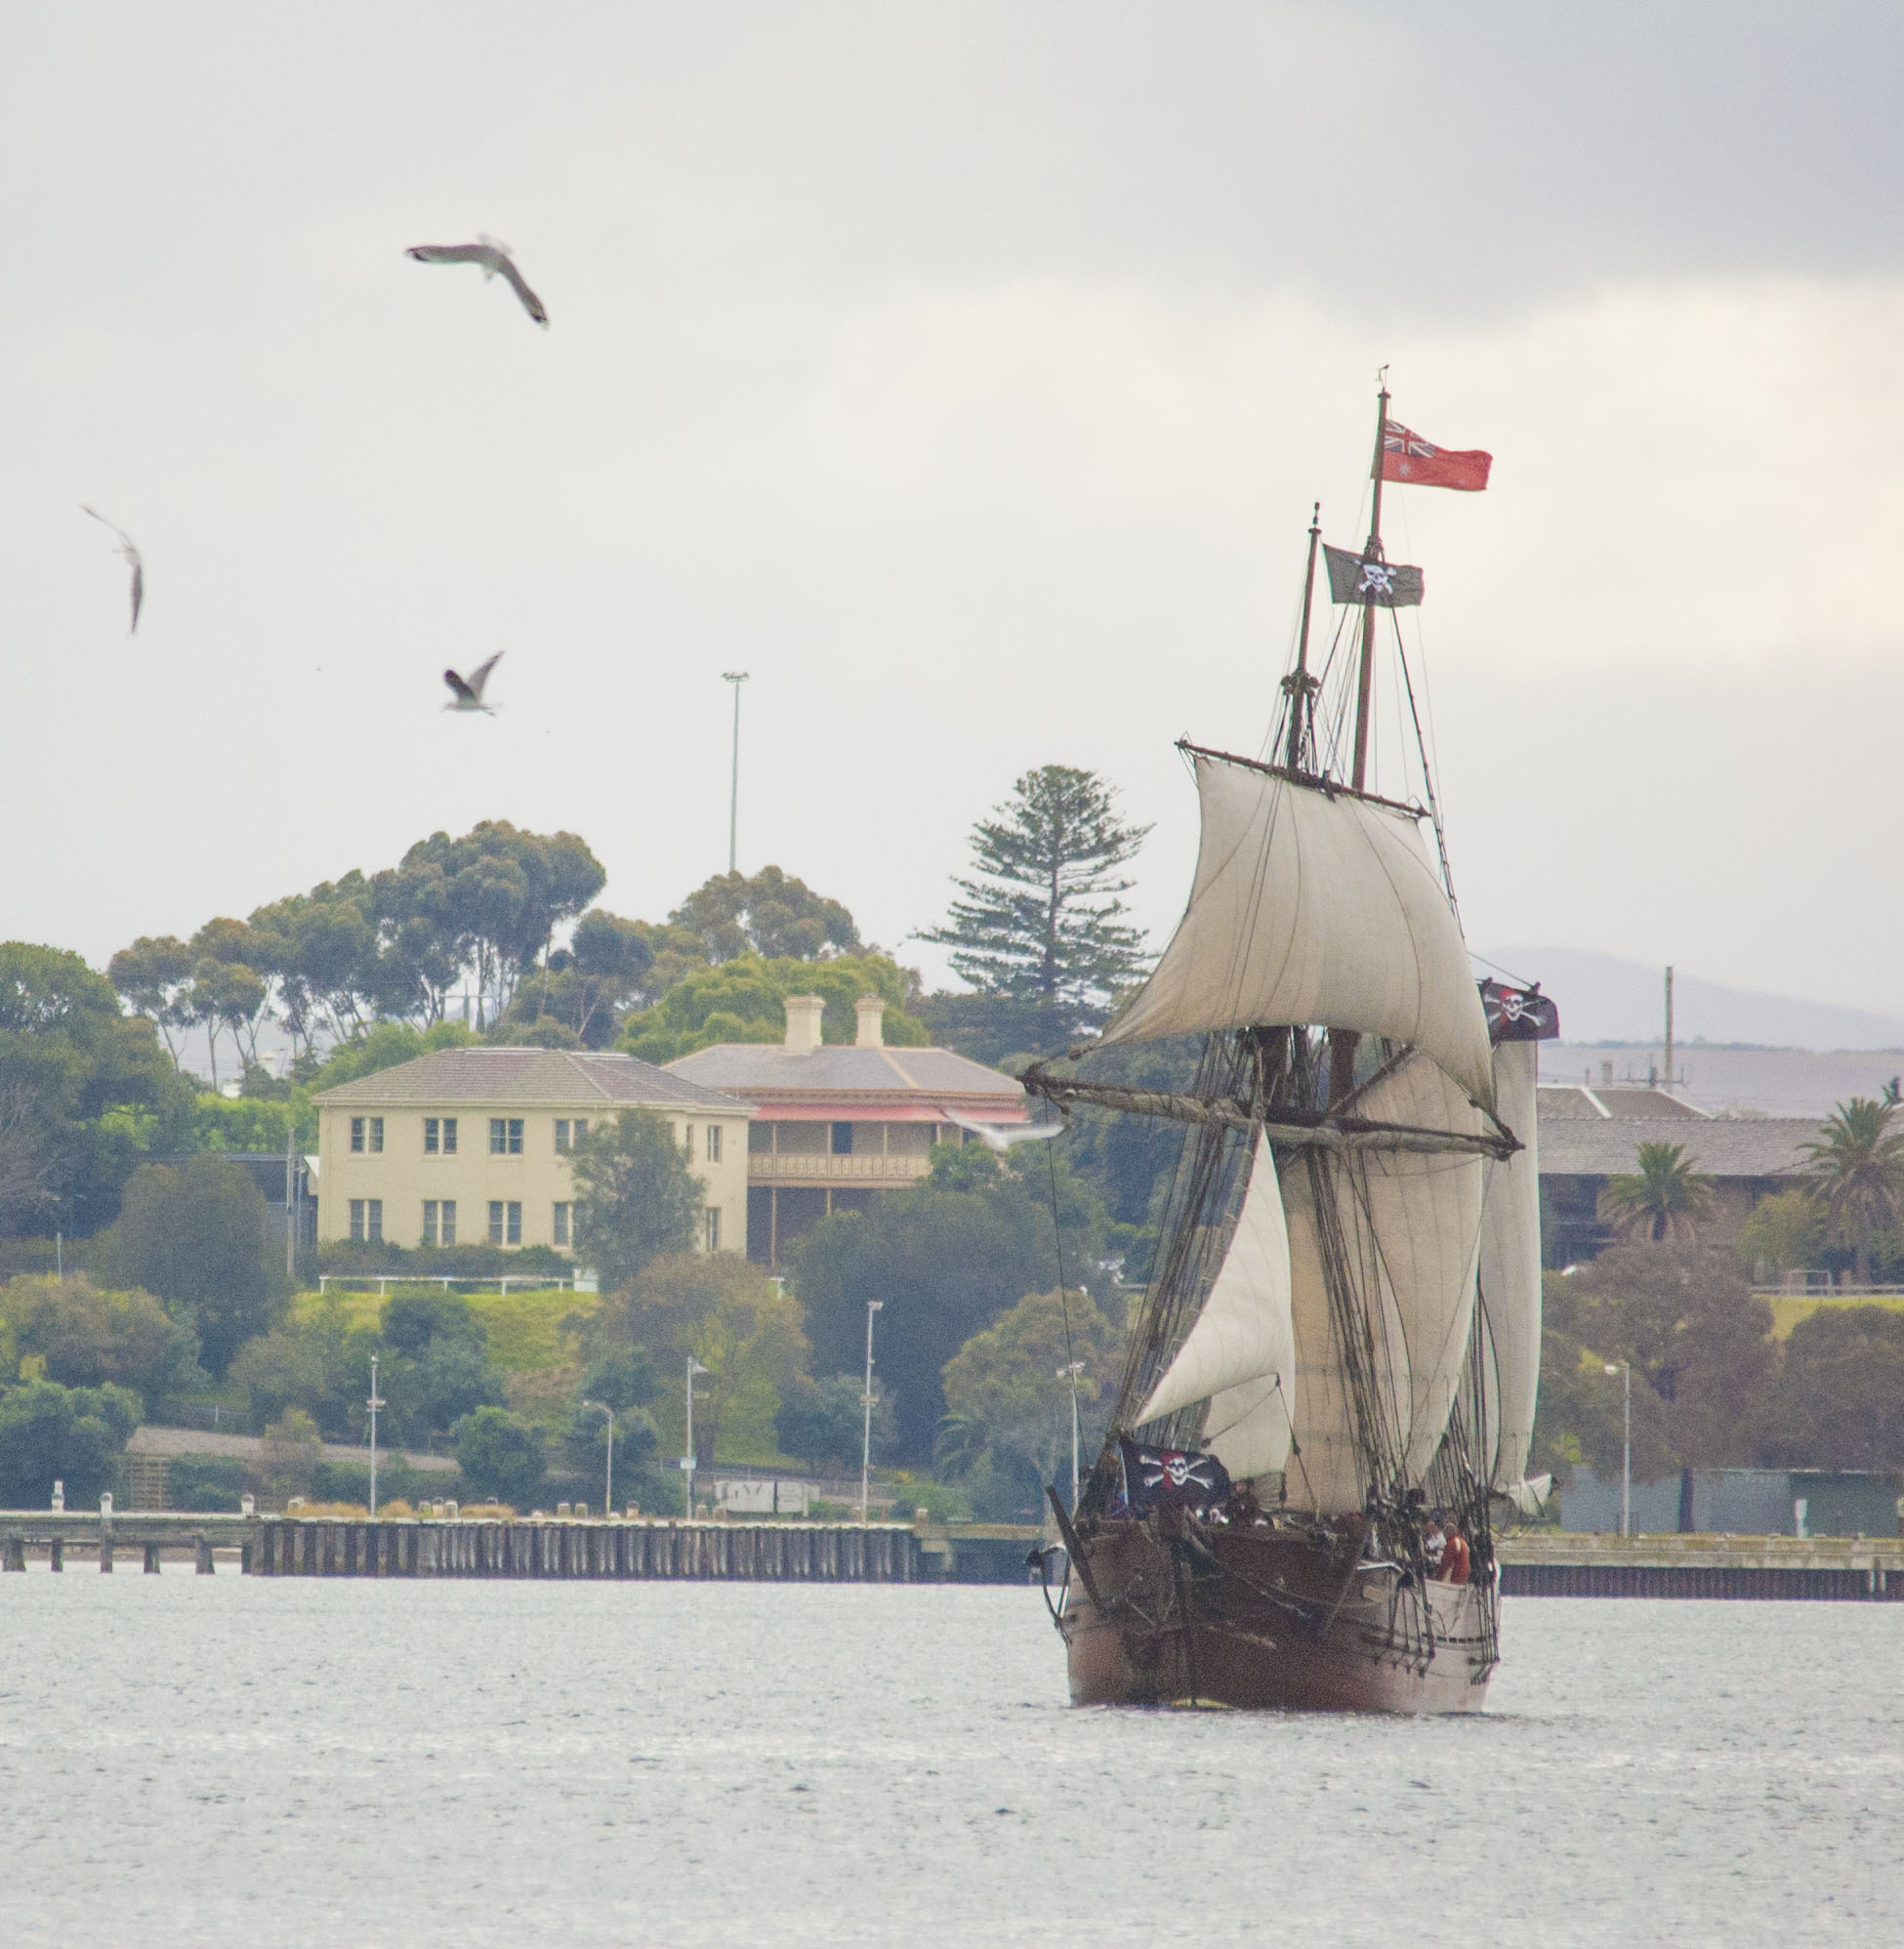 Pirate Weekend in Geelong